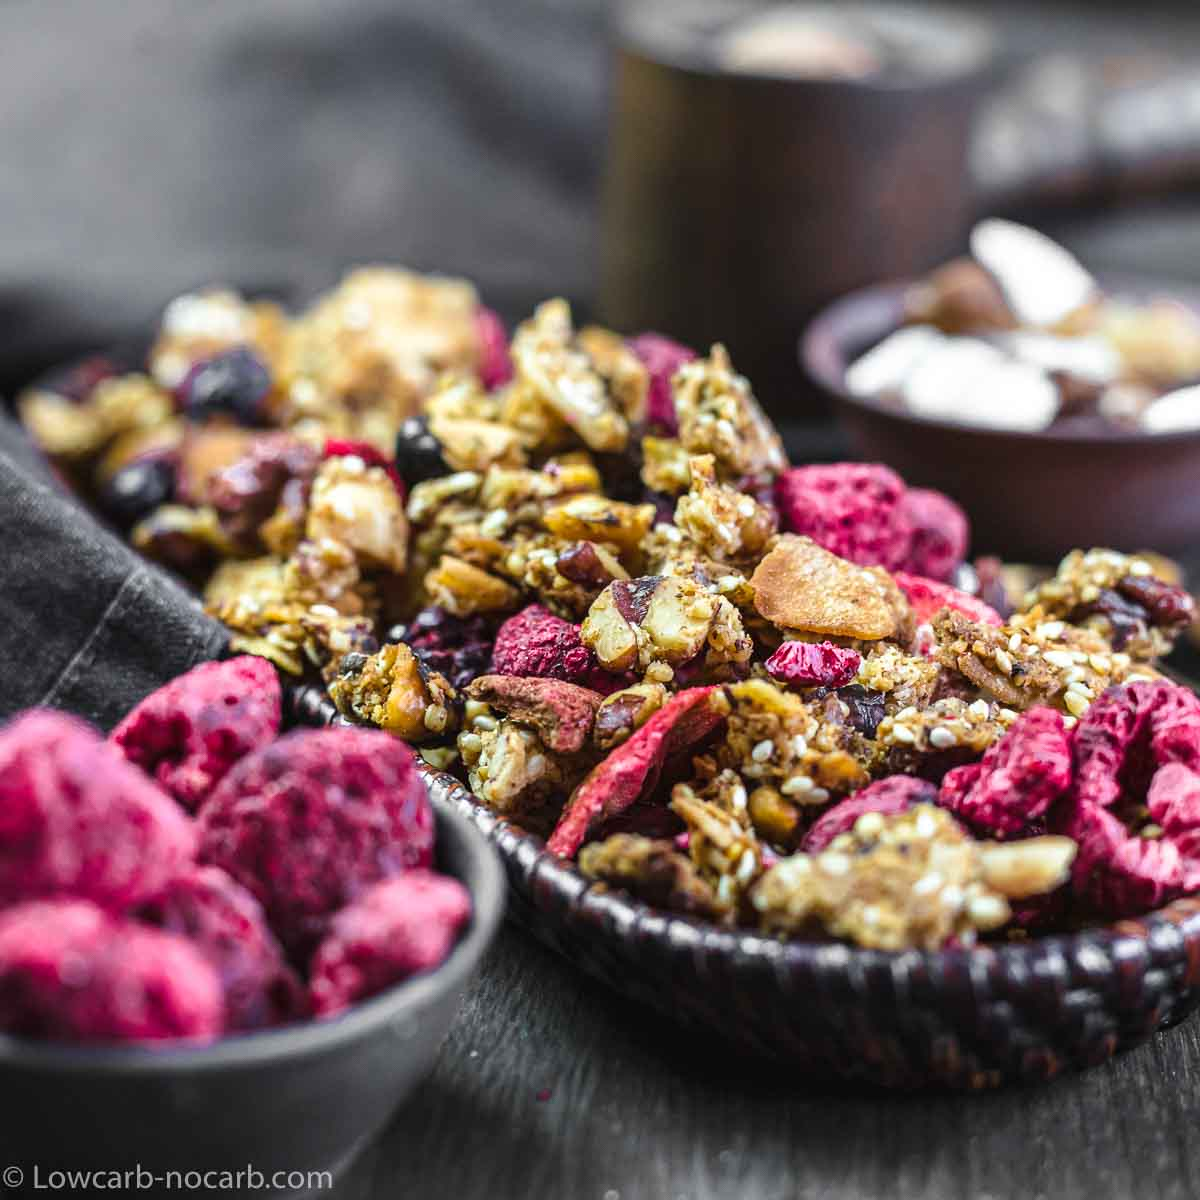 Homemade Low Carb Granola with dry Berries in a wooden bowl